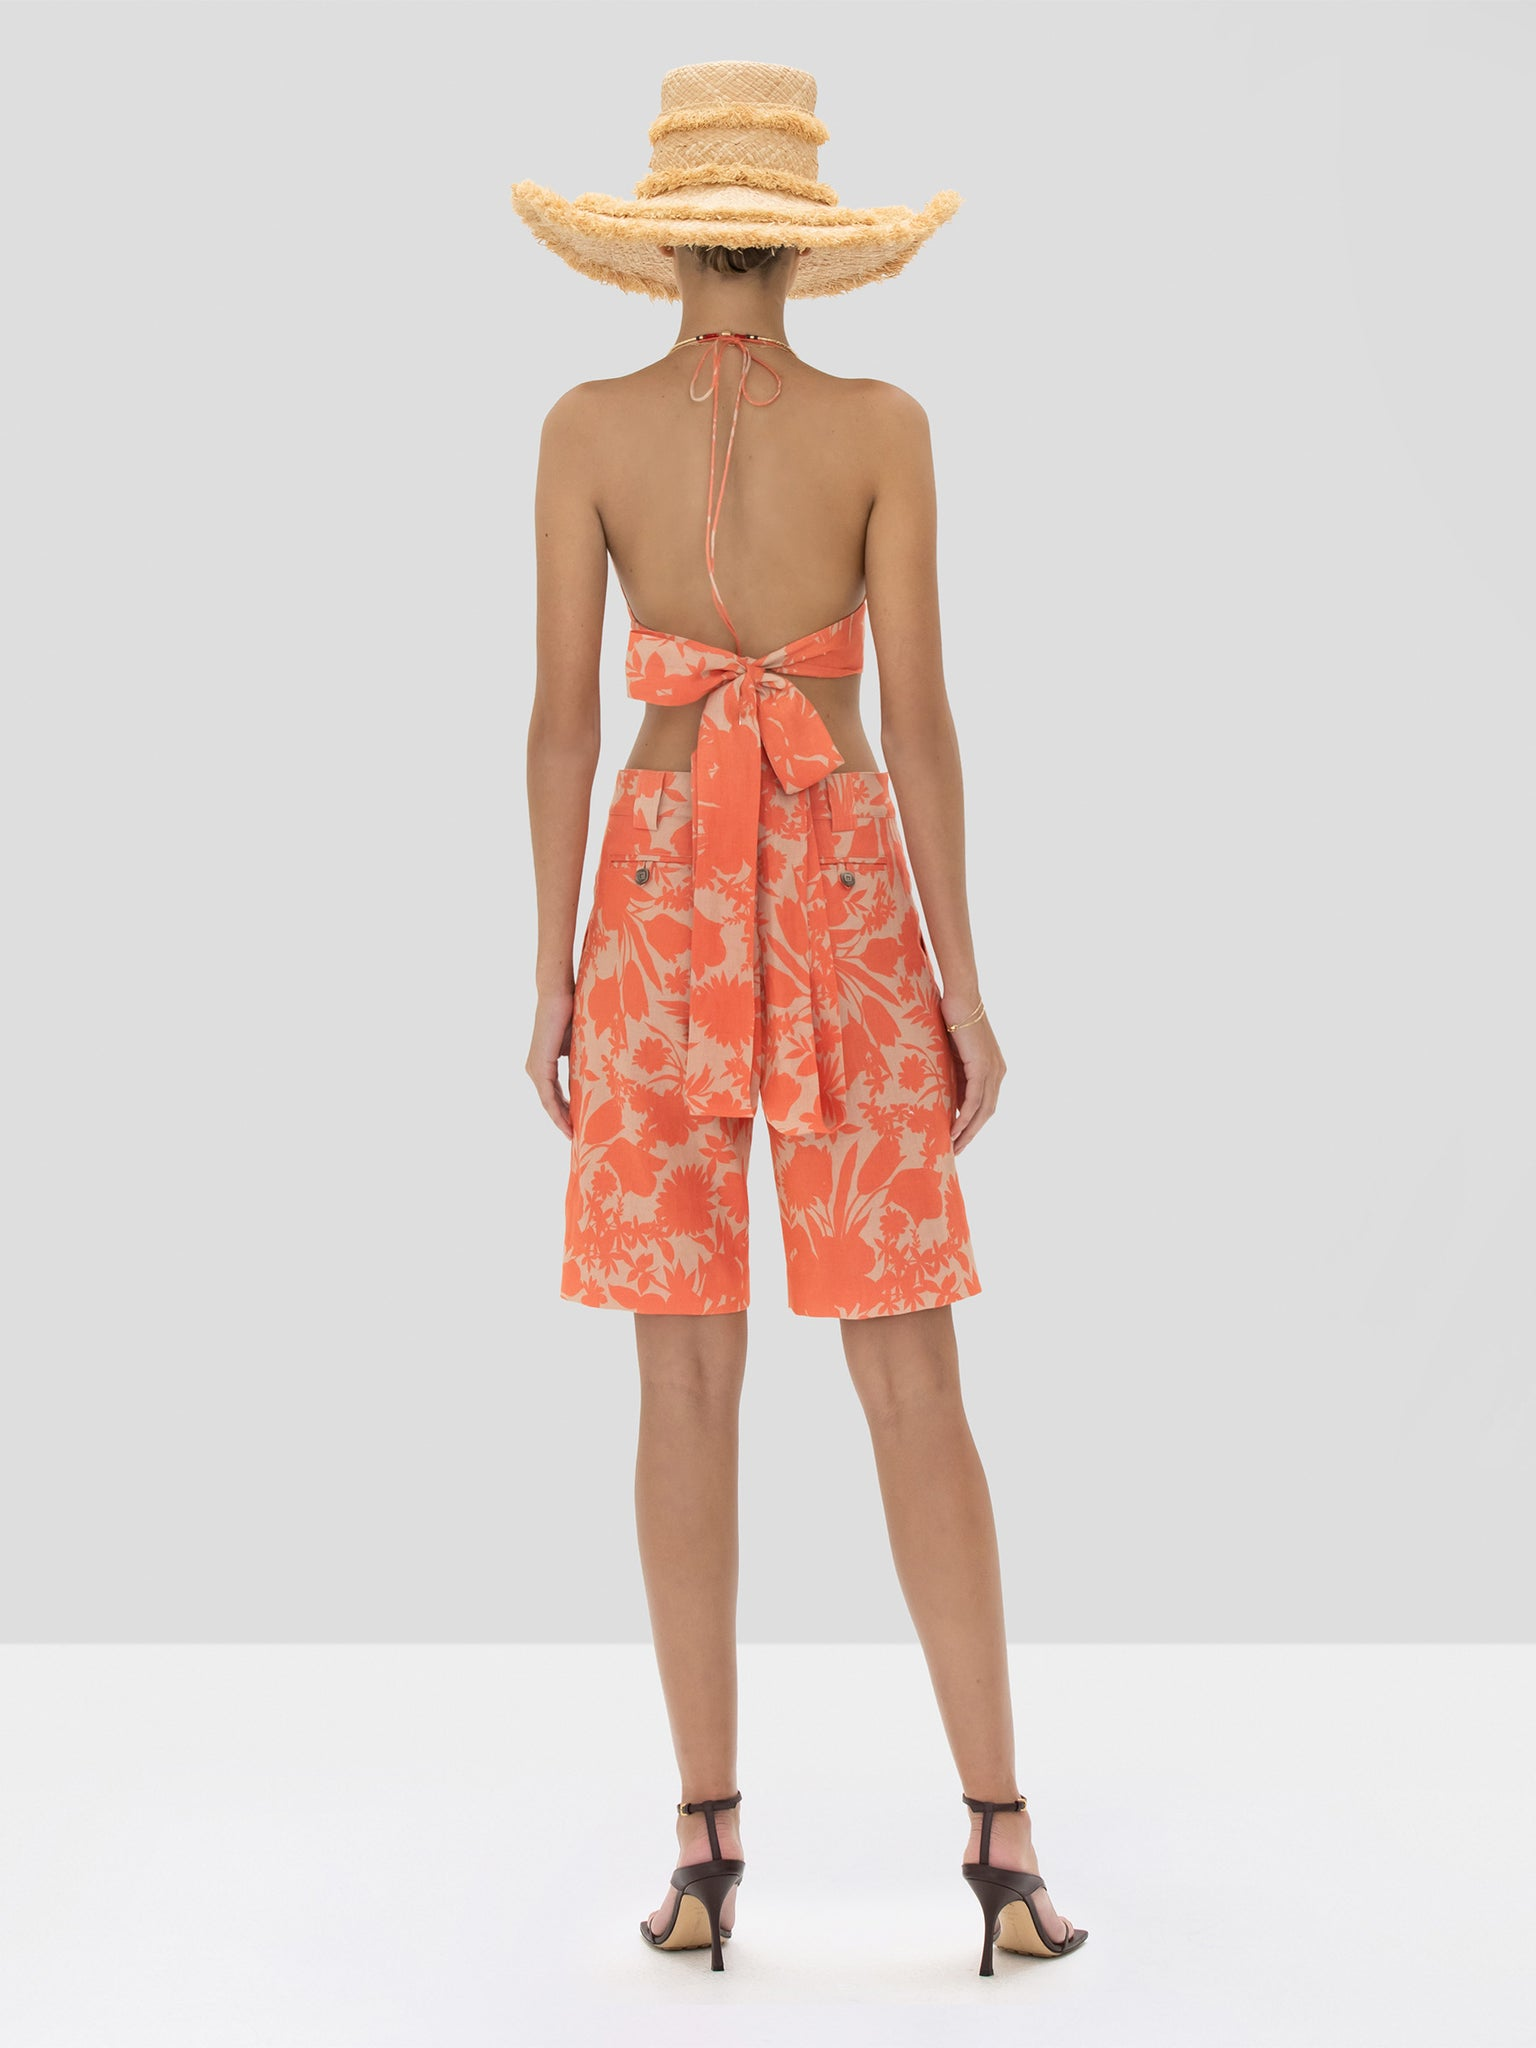 The Gaila Top in Sand Botanical from the Spring Summer 2020 Ready To Wear Collection. - Rear View